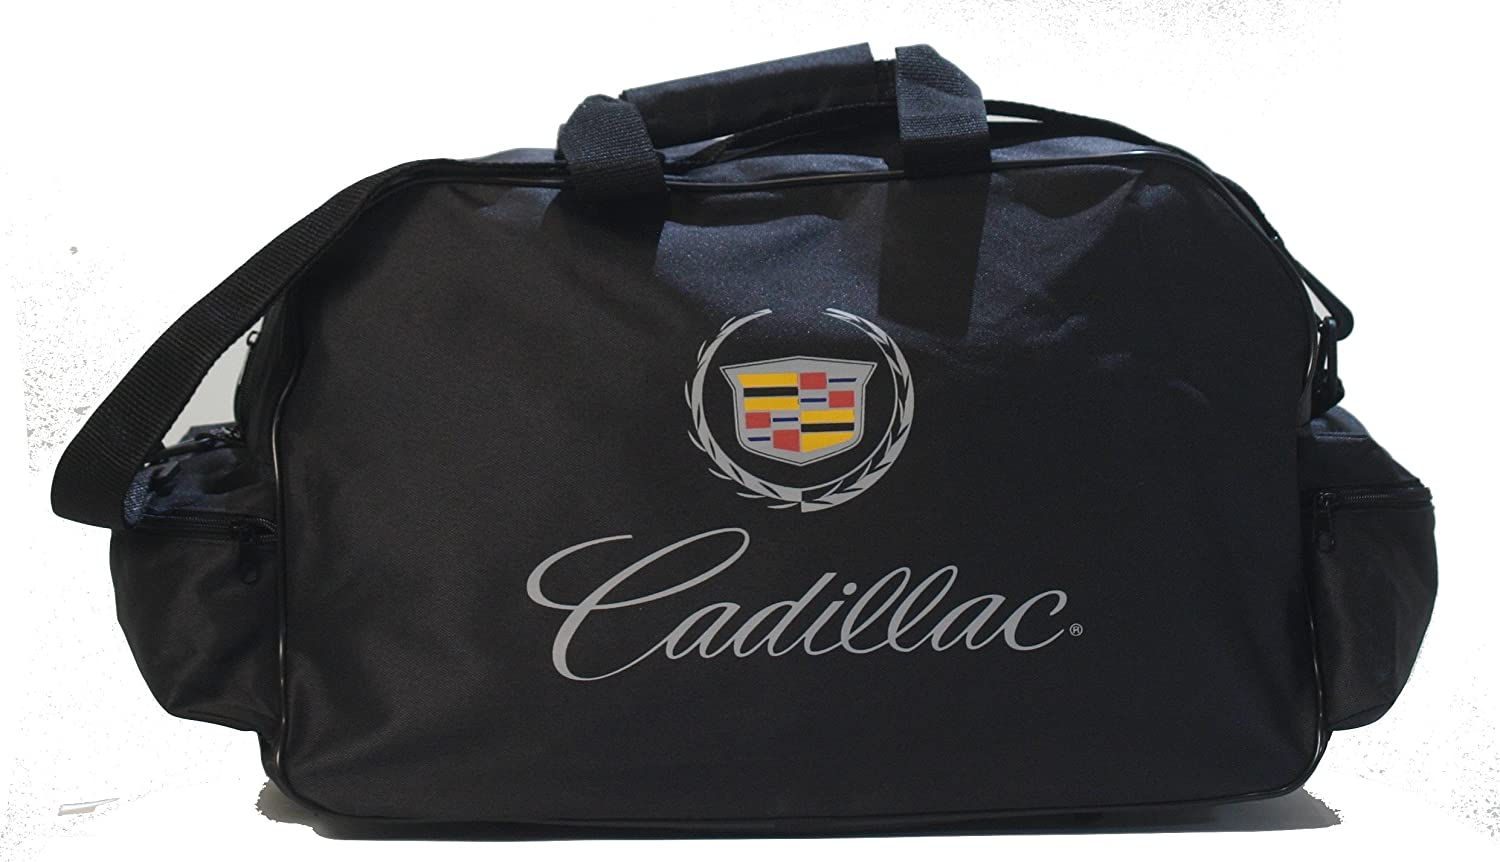 Cadillac Black Logo Duffle Travel Sport Gym Bag backpack